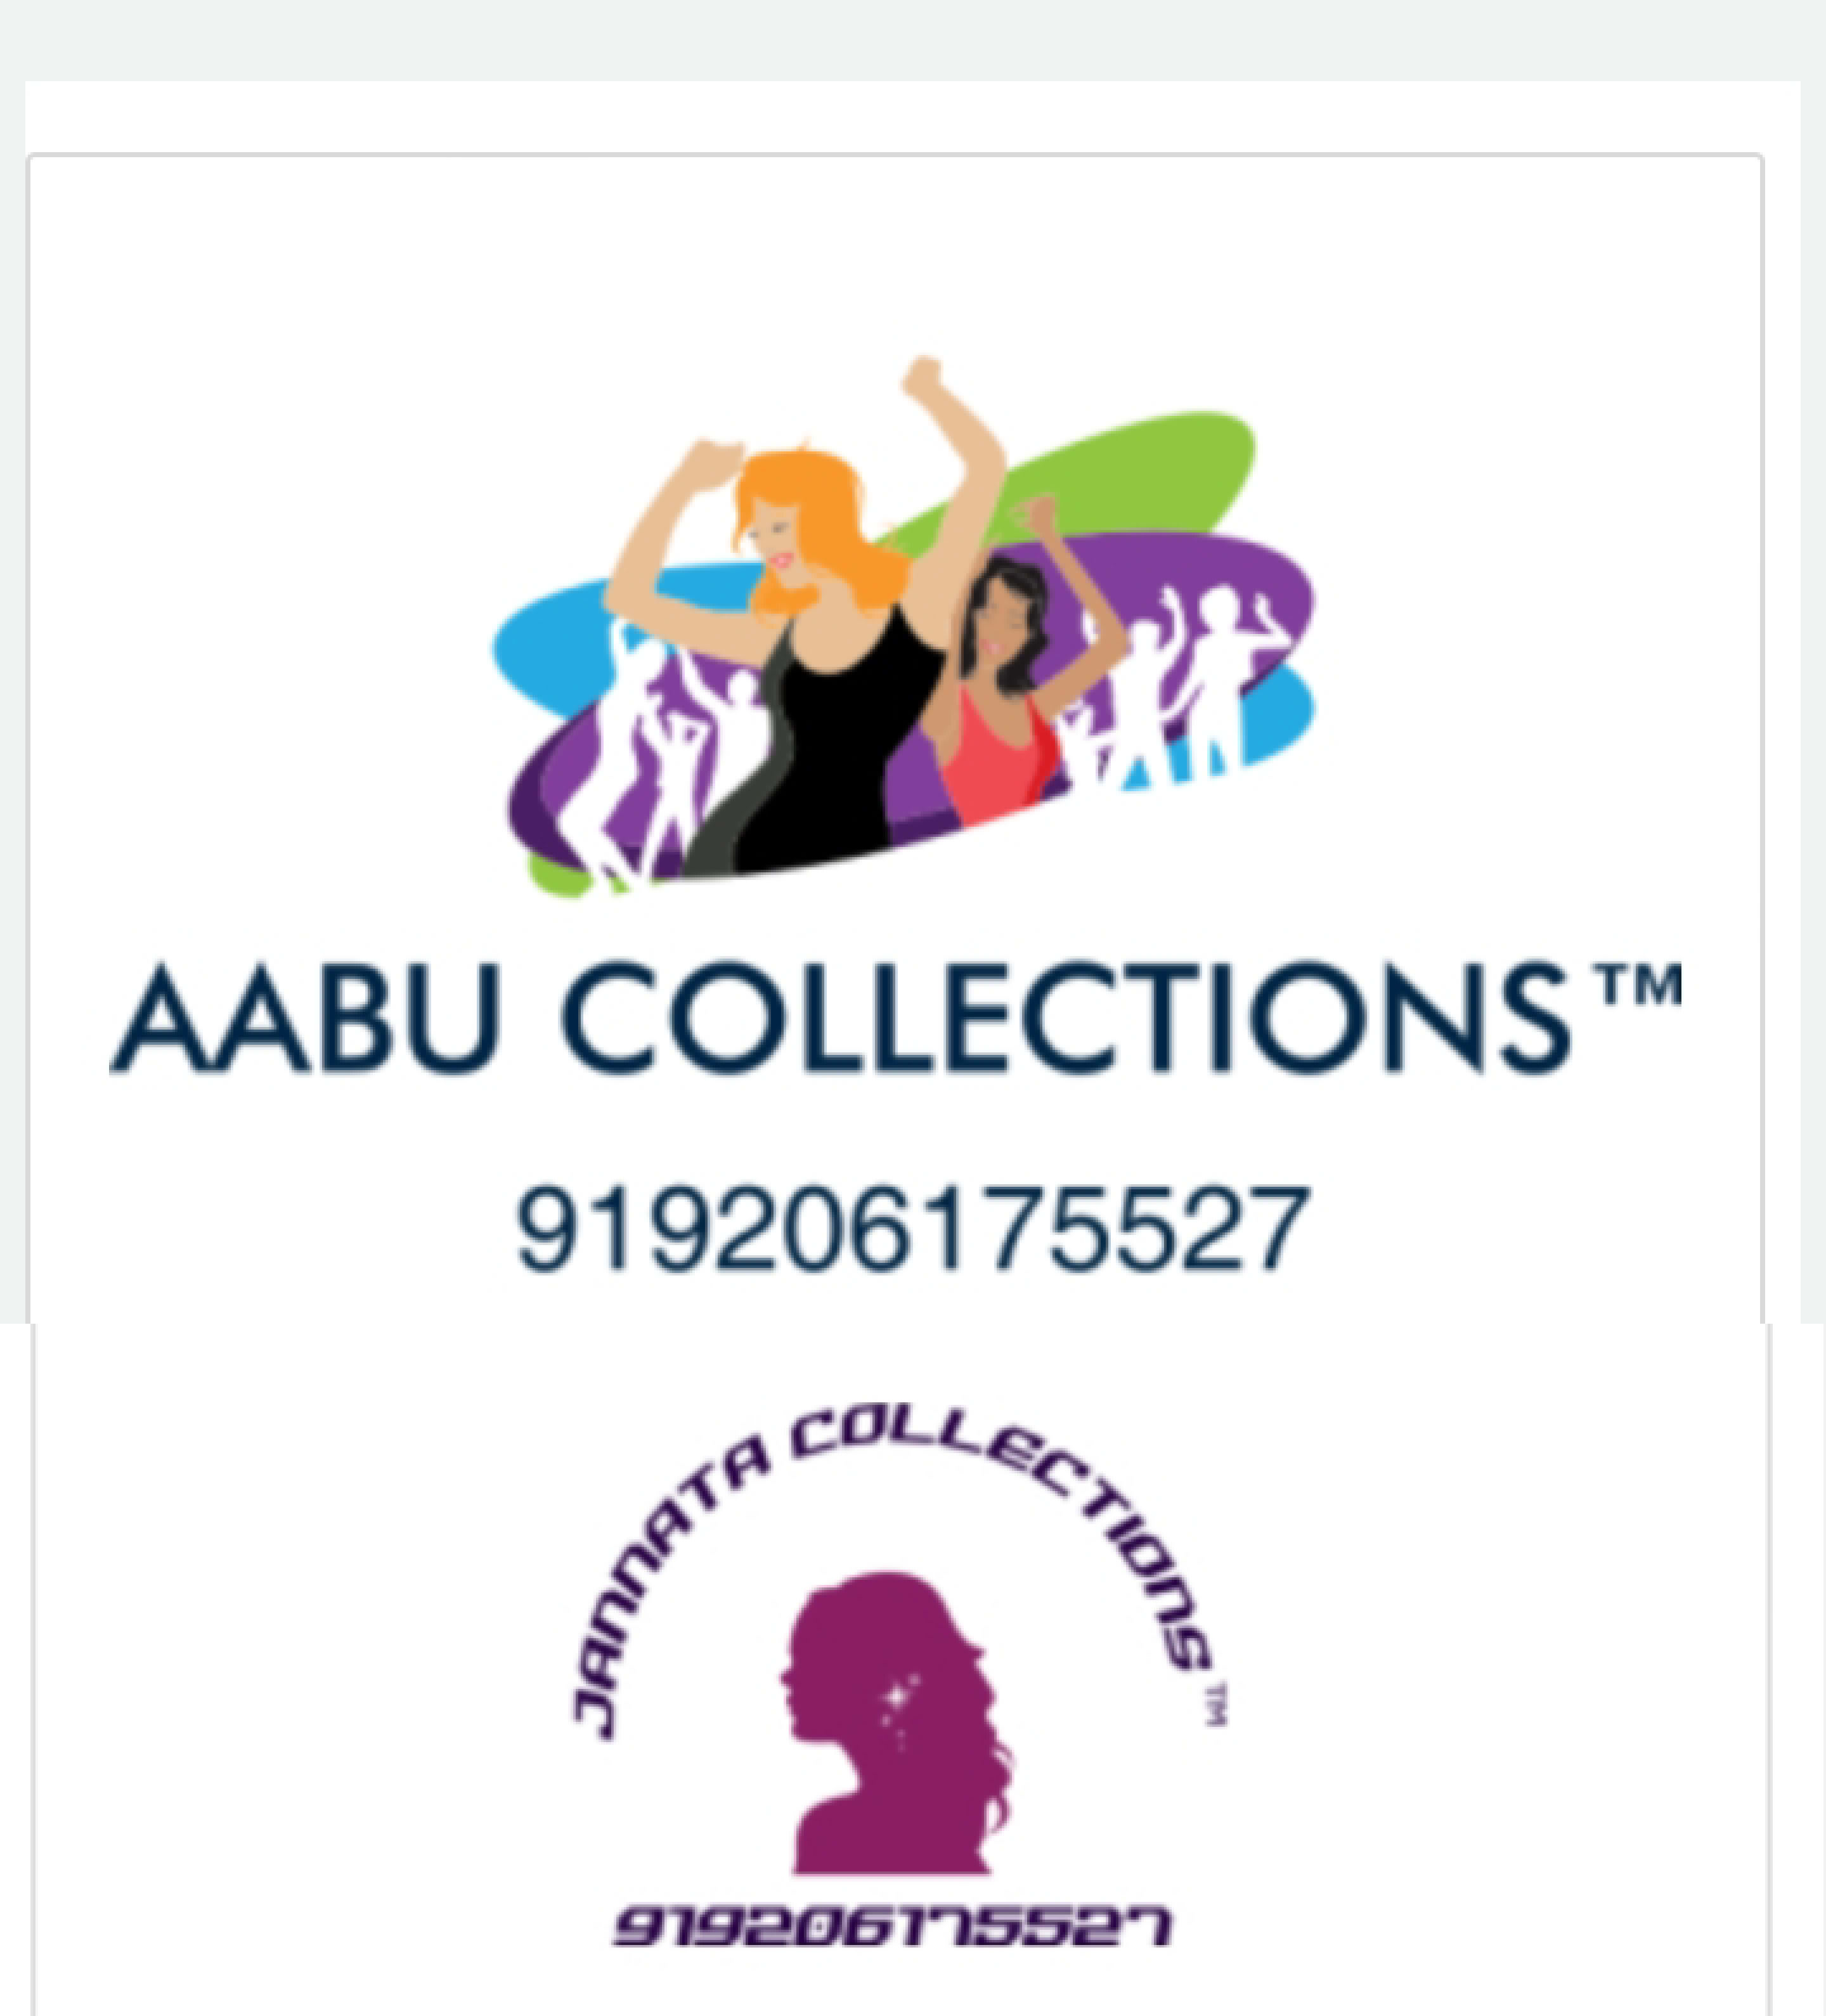 Aabucollections